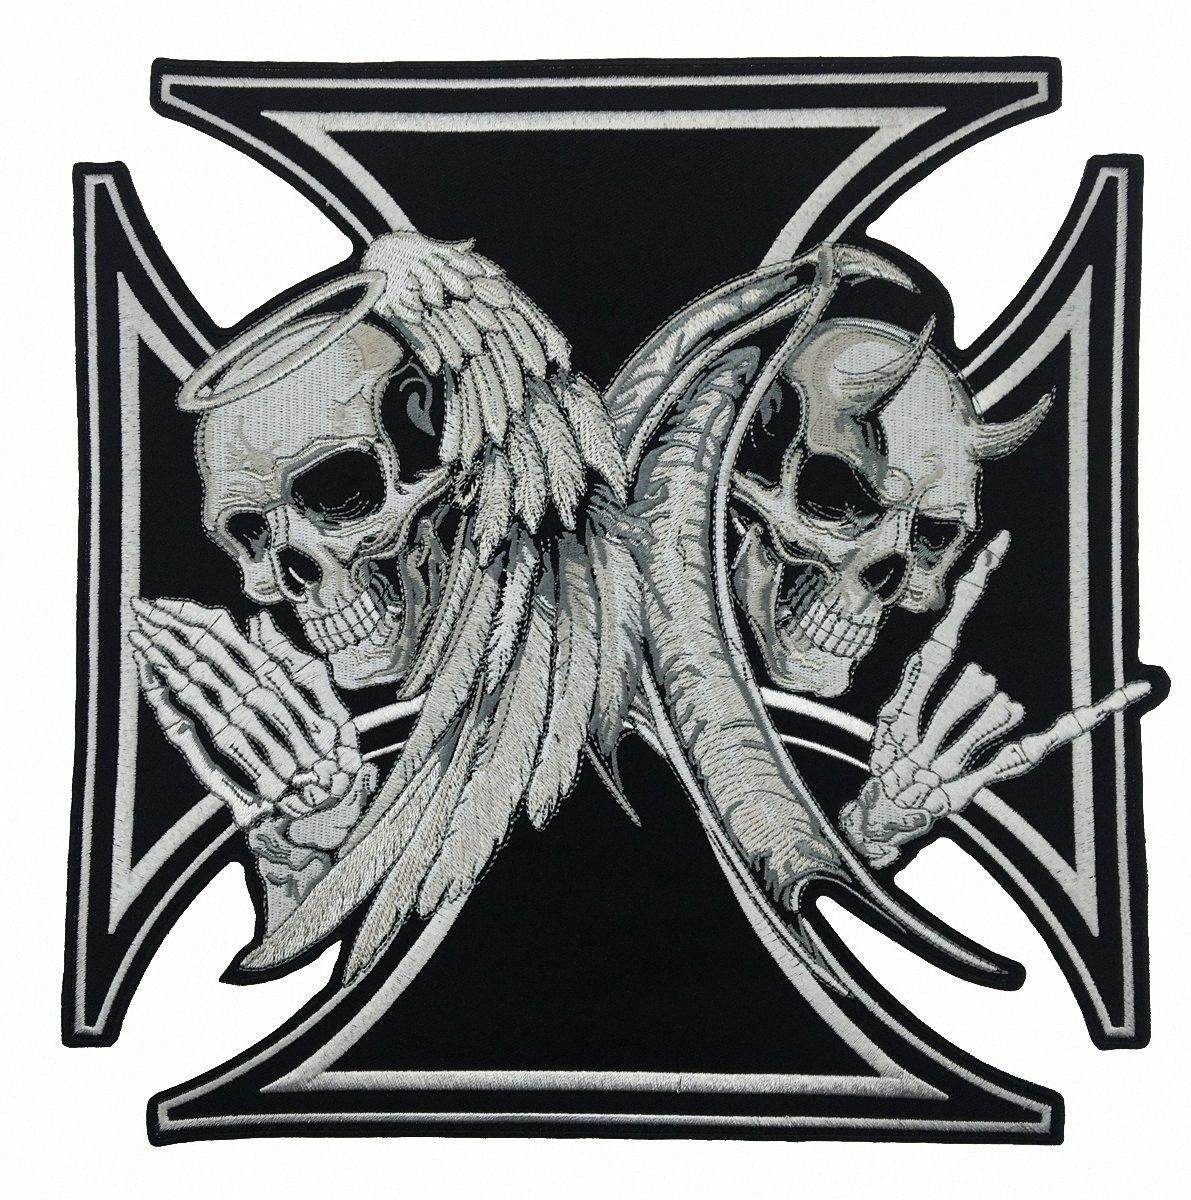 NEW ARRIVAL LARGE SIZE CROSS DEATH DEVIL SKULL PATCH 천사 SKULL 오토바이 BIKER 수 놓은 BACK PATCH IRON ON SEW 무료 배송 CGLR 번호